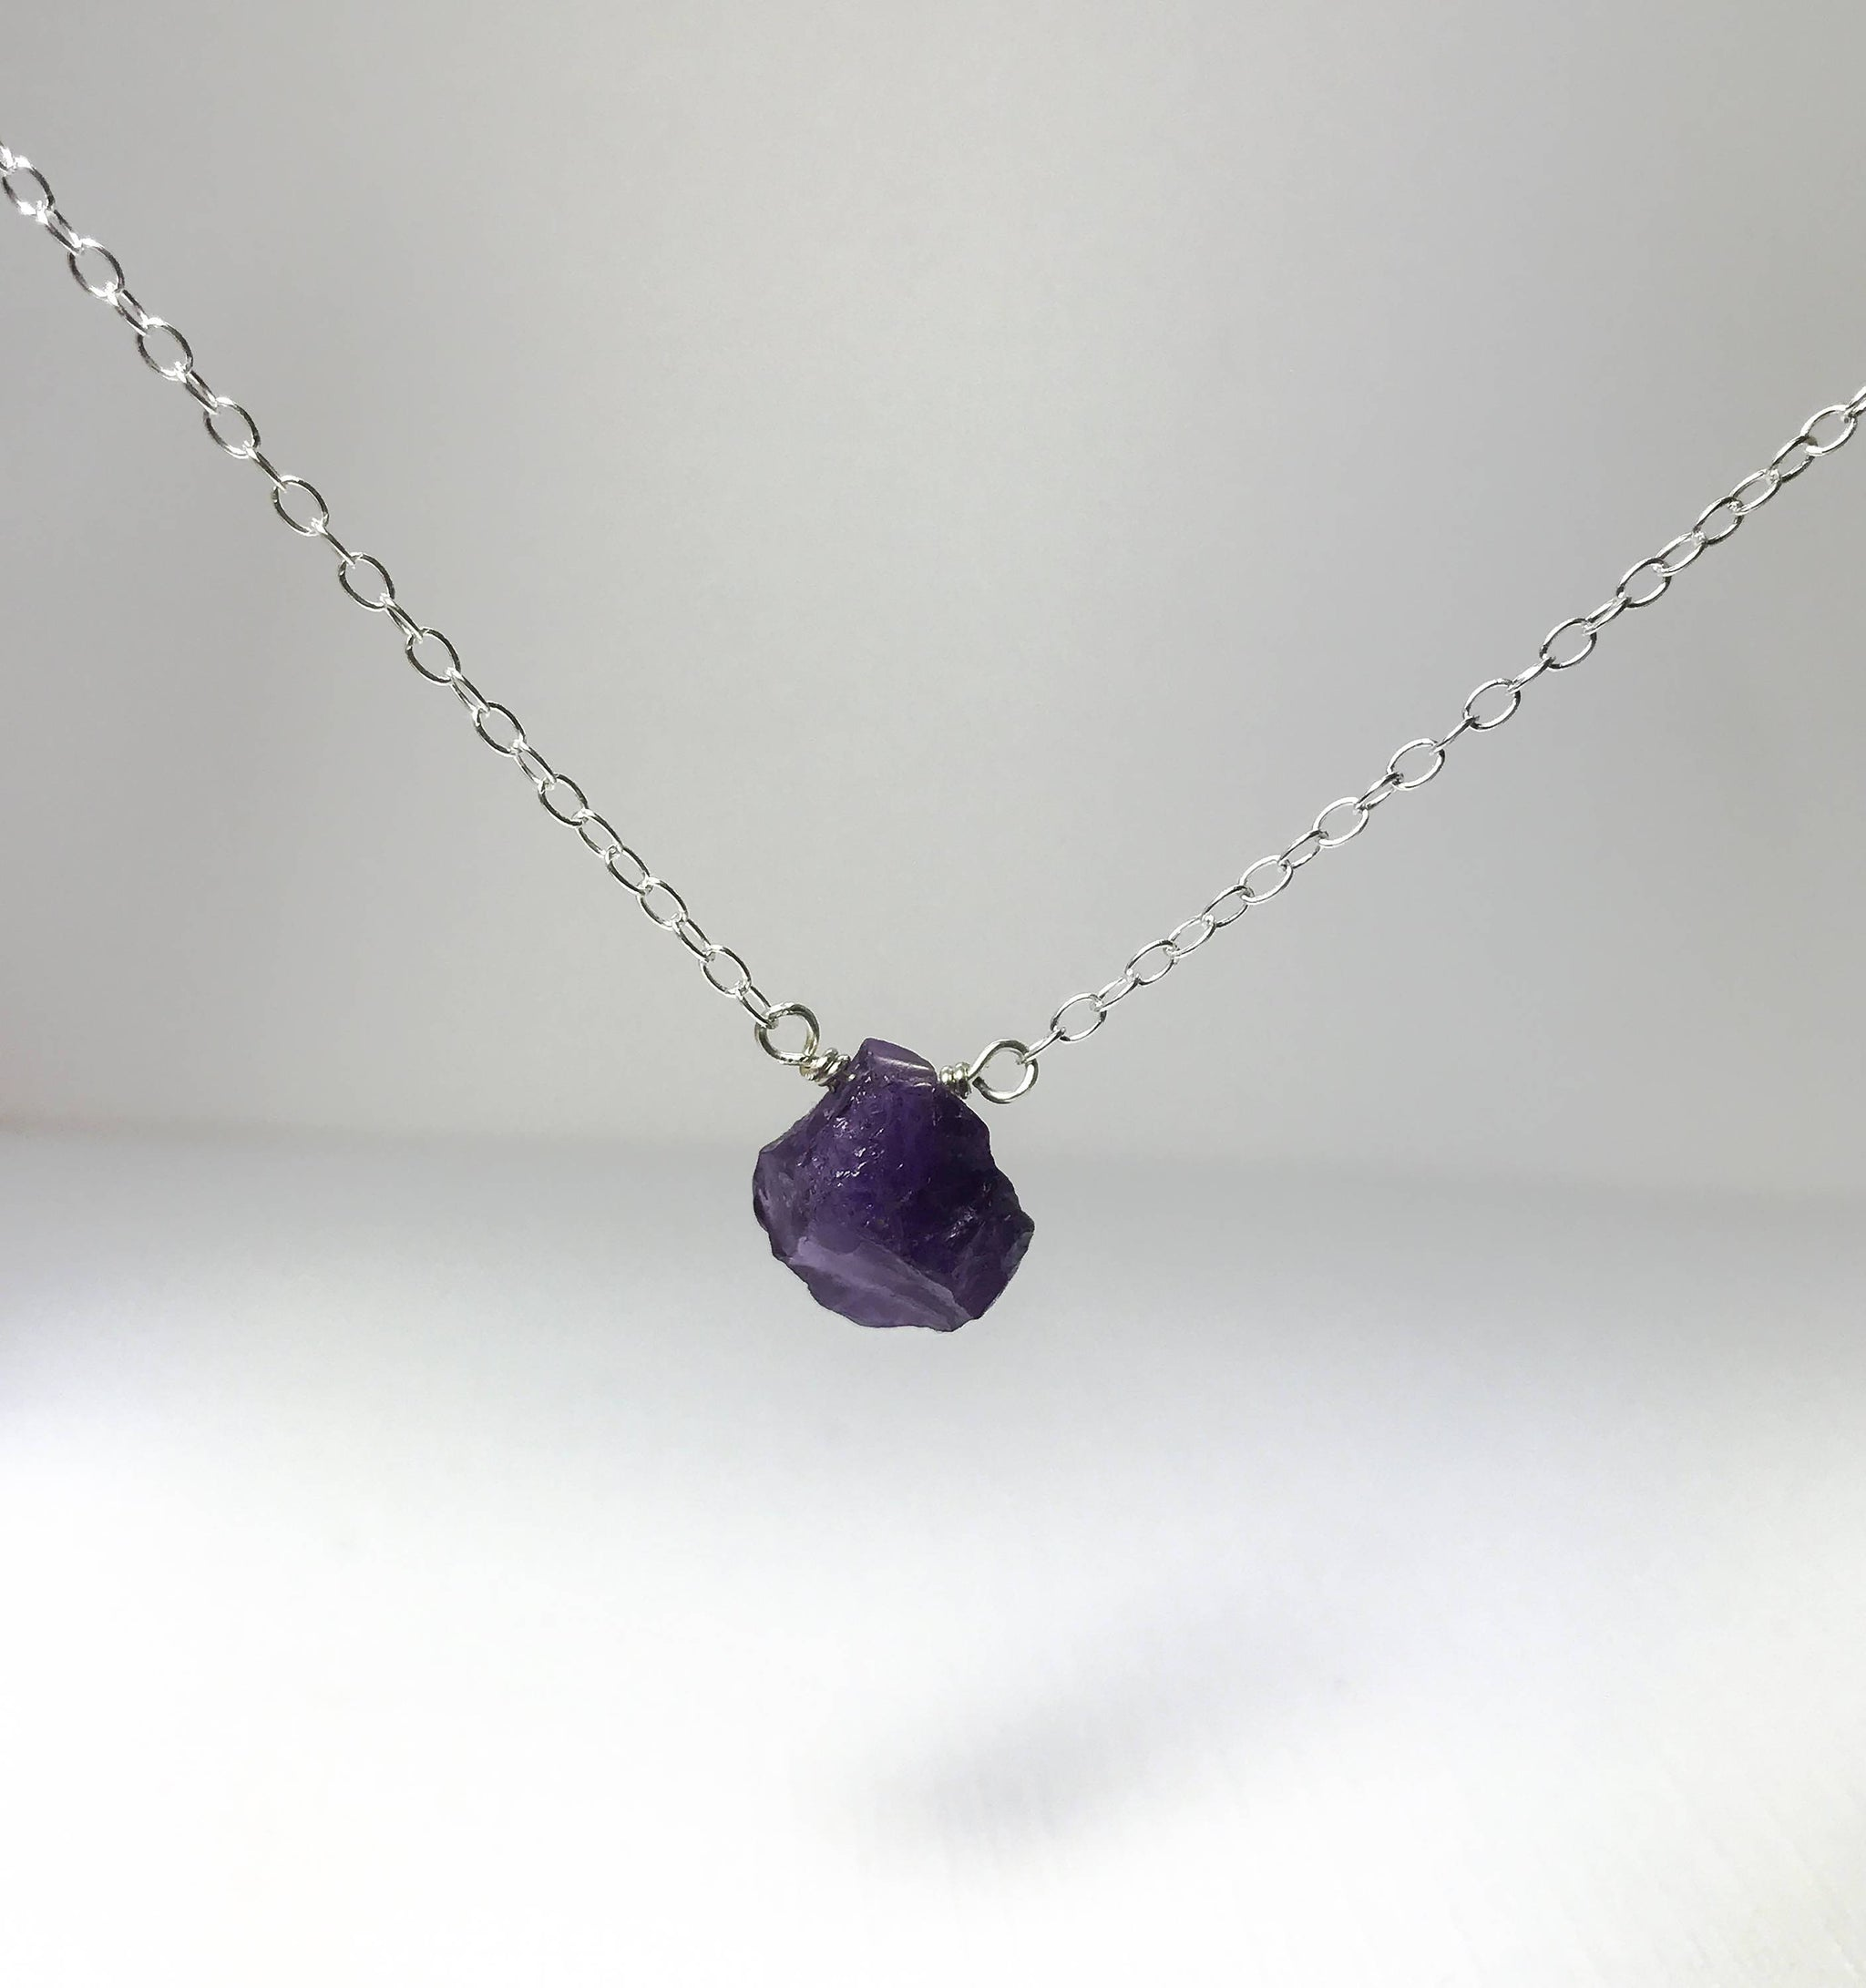 raw fable shop lore amethyst pendant